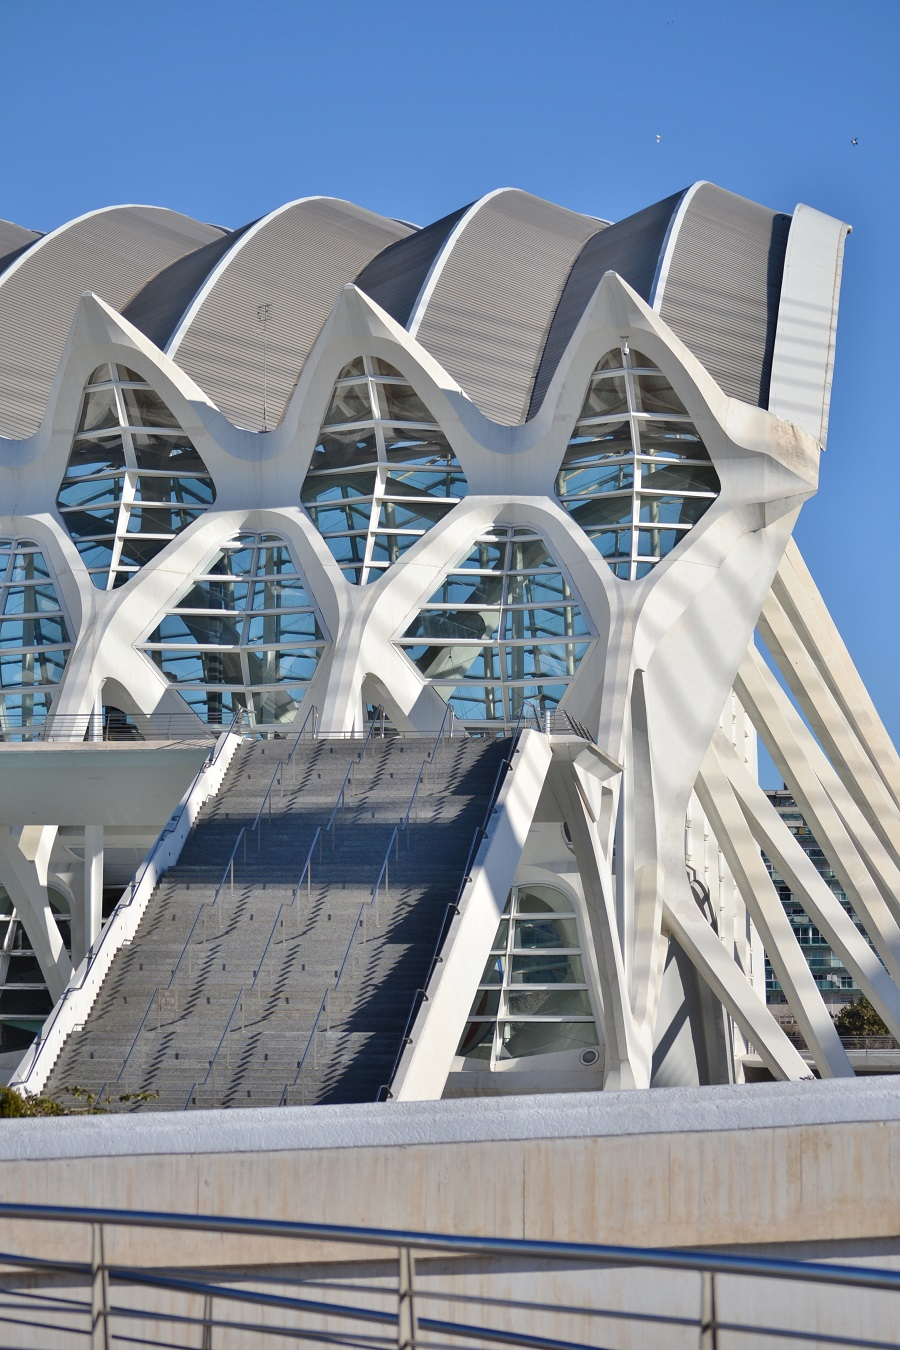 The City of Arts and Sciences in Valencia